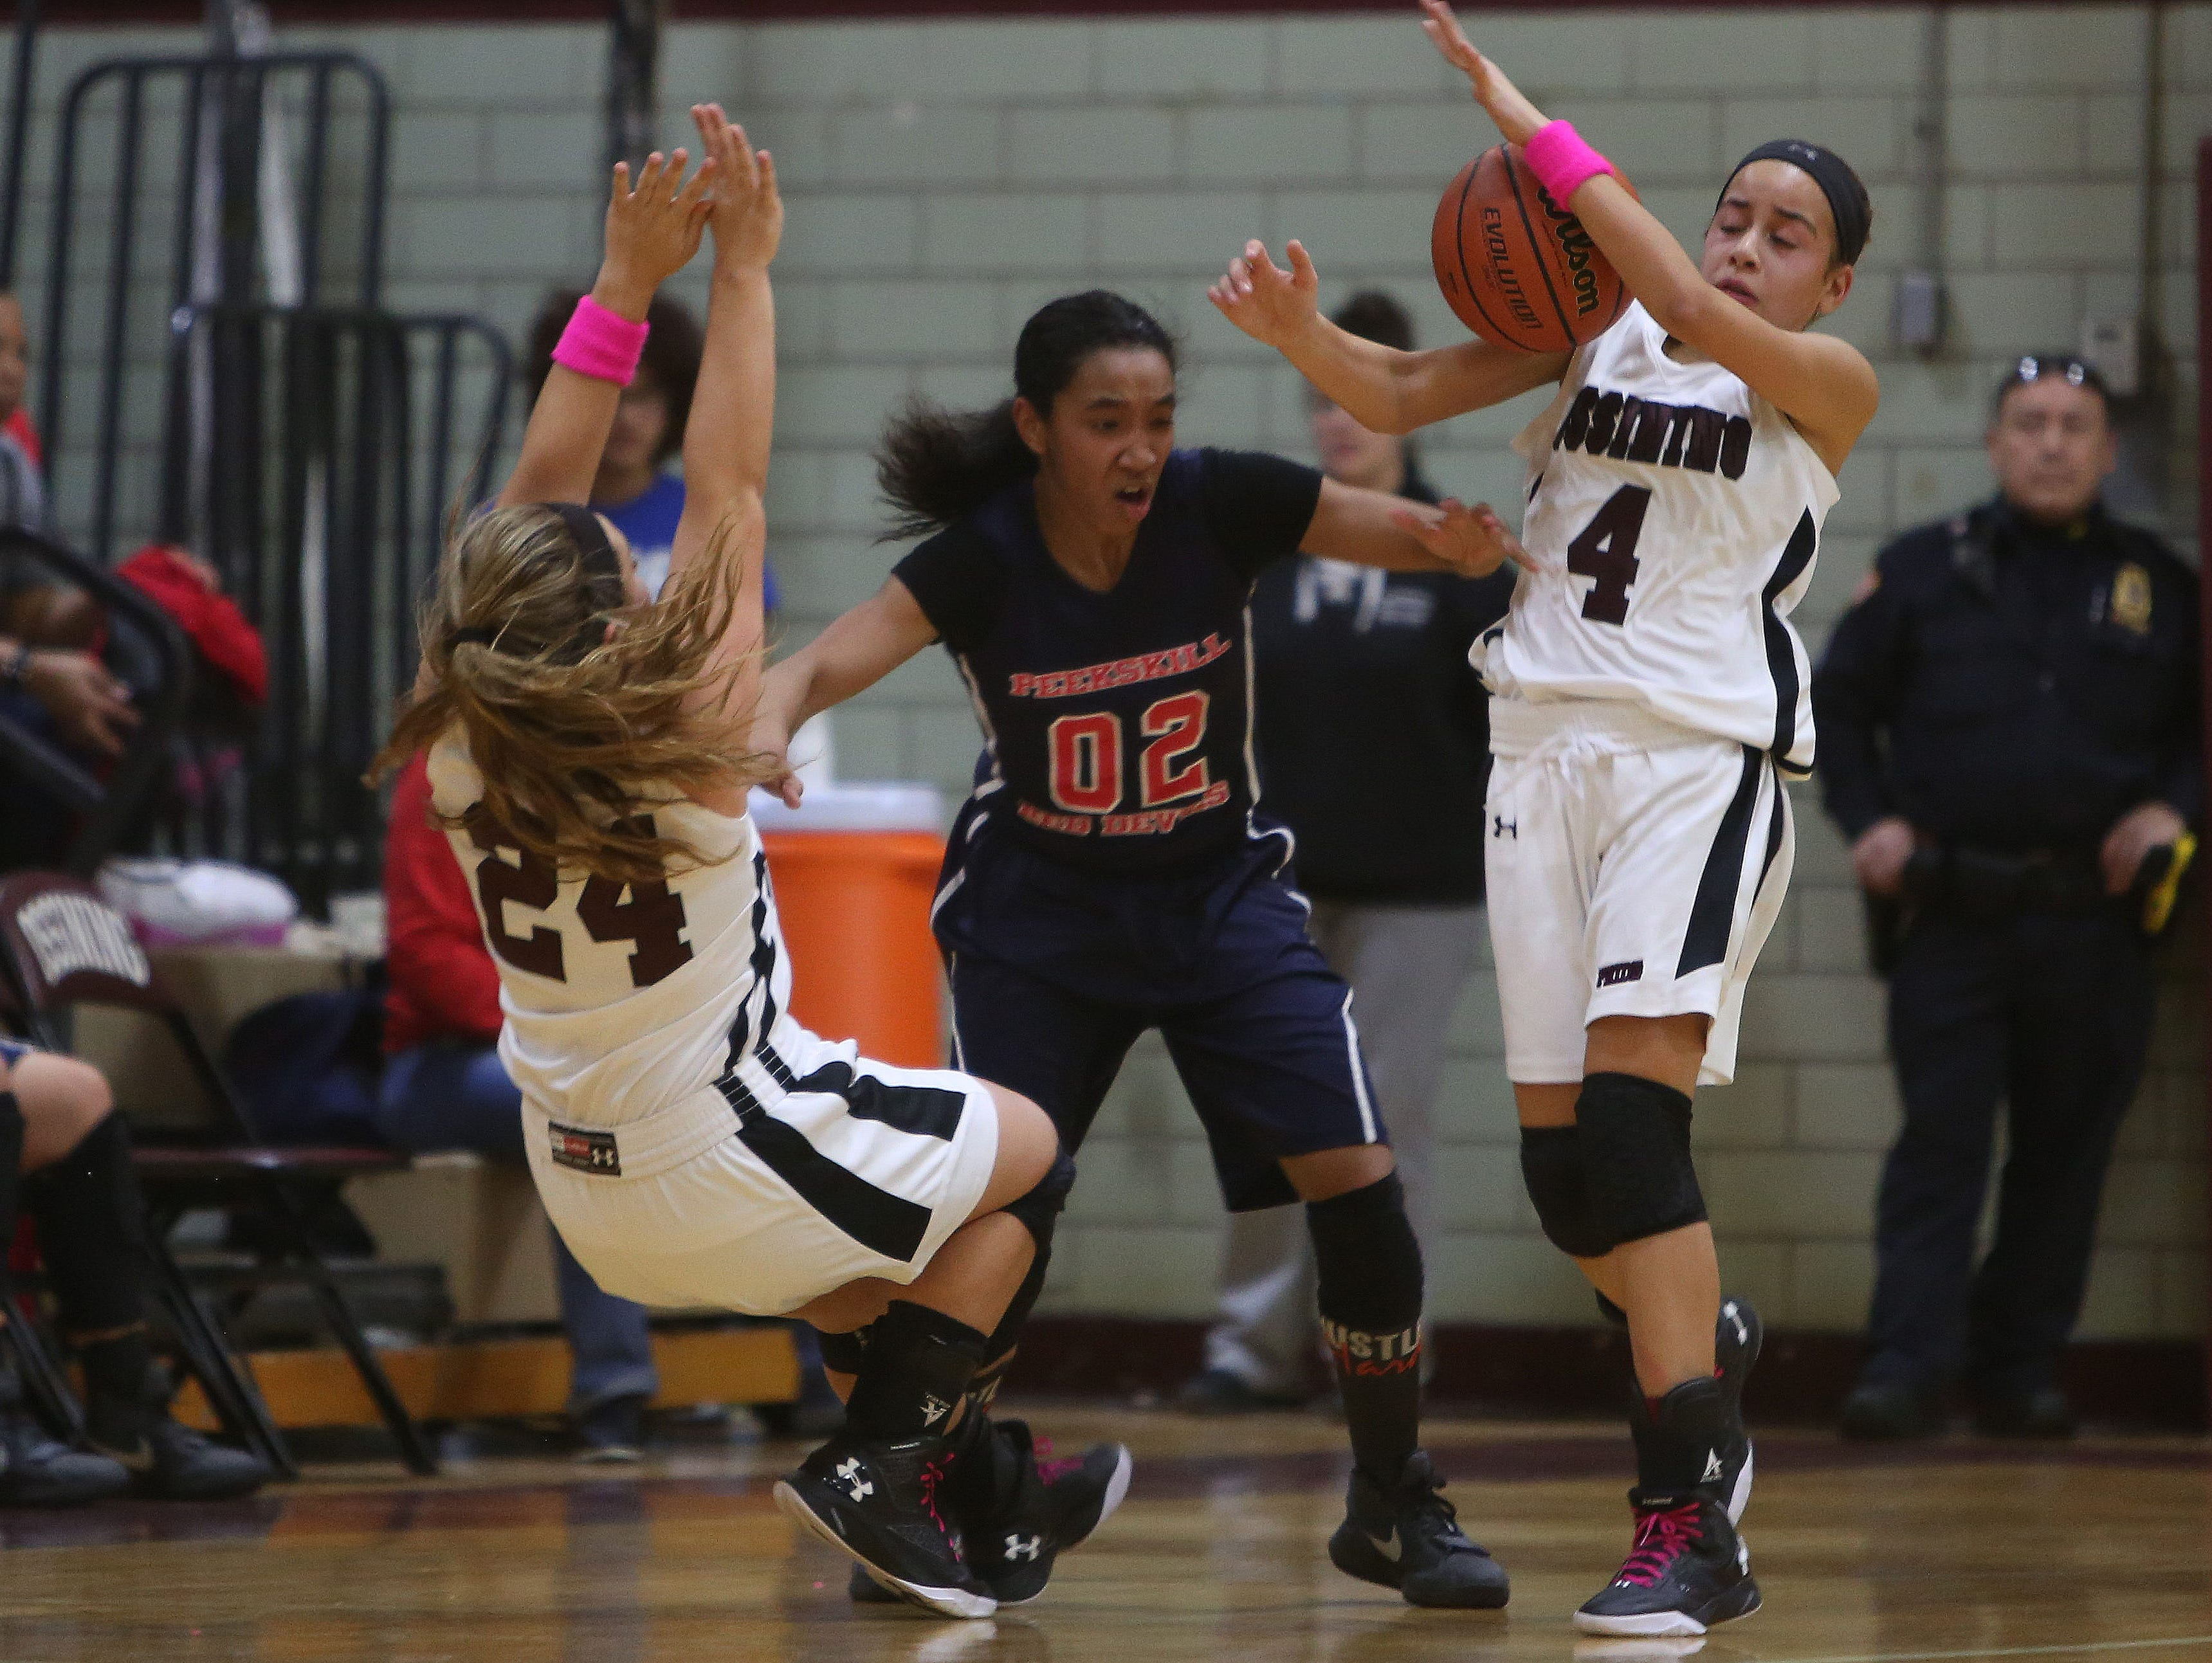 Peekskill's Lanay Rodney (02) has the ball stolen away by Ossining's Jaida Strippoli (4) after getting pressure from Samantha Cozzolino (24) during girls basketball game at Ossining High School Feb. 2, 2016.